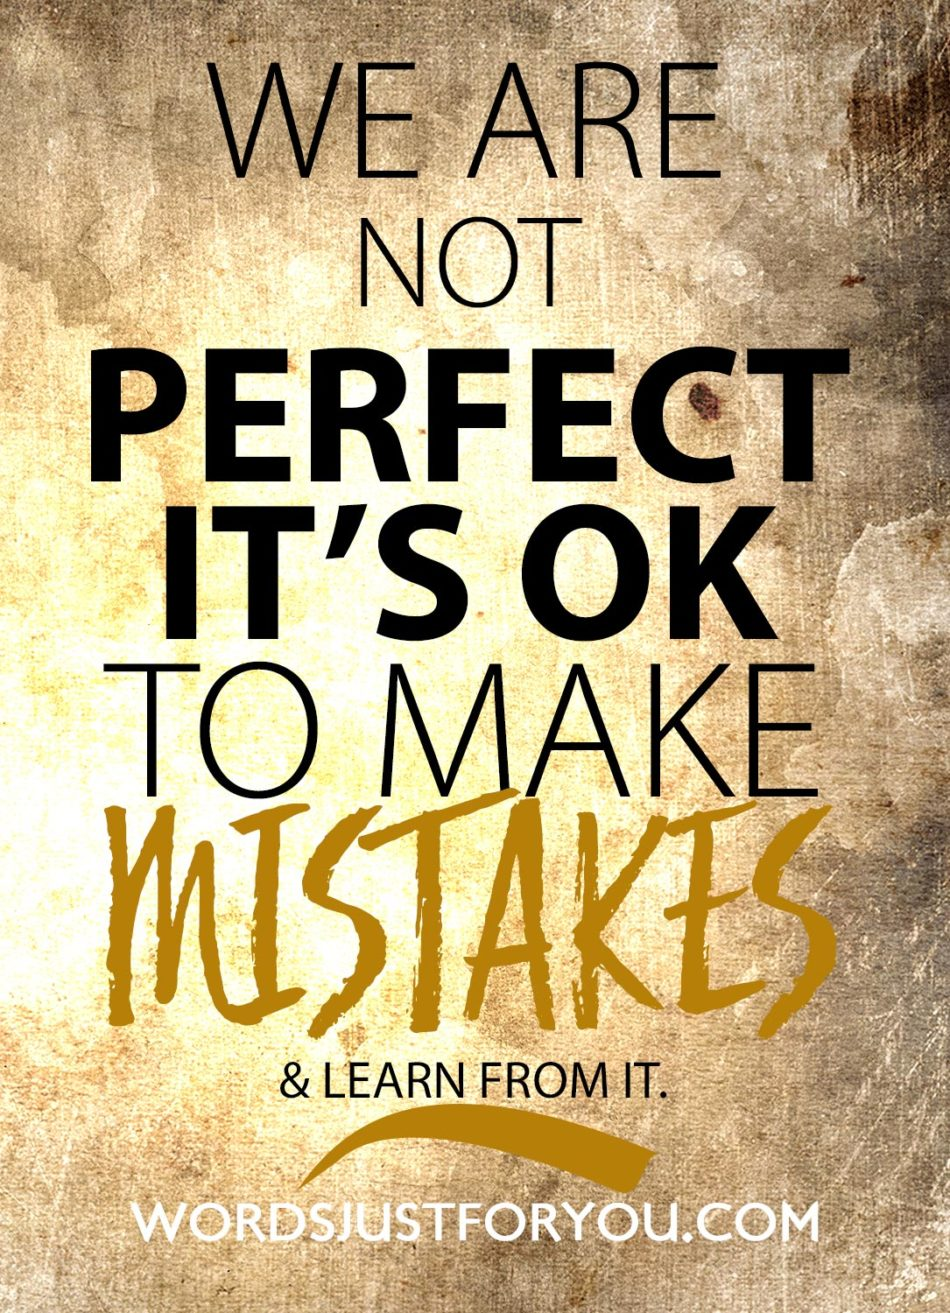 We are not perfect, it's ok to make mistakes